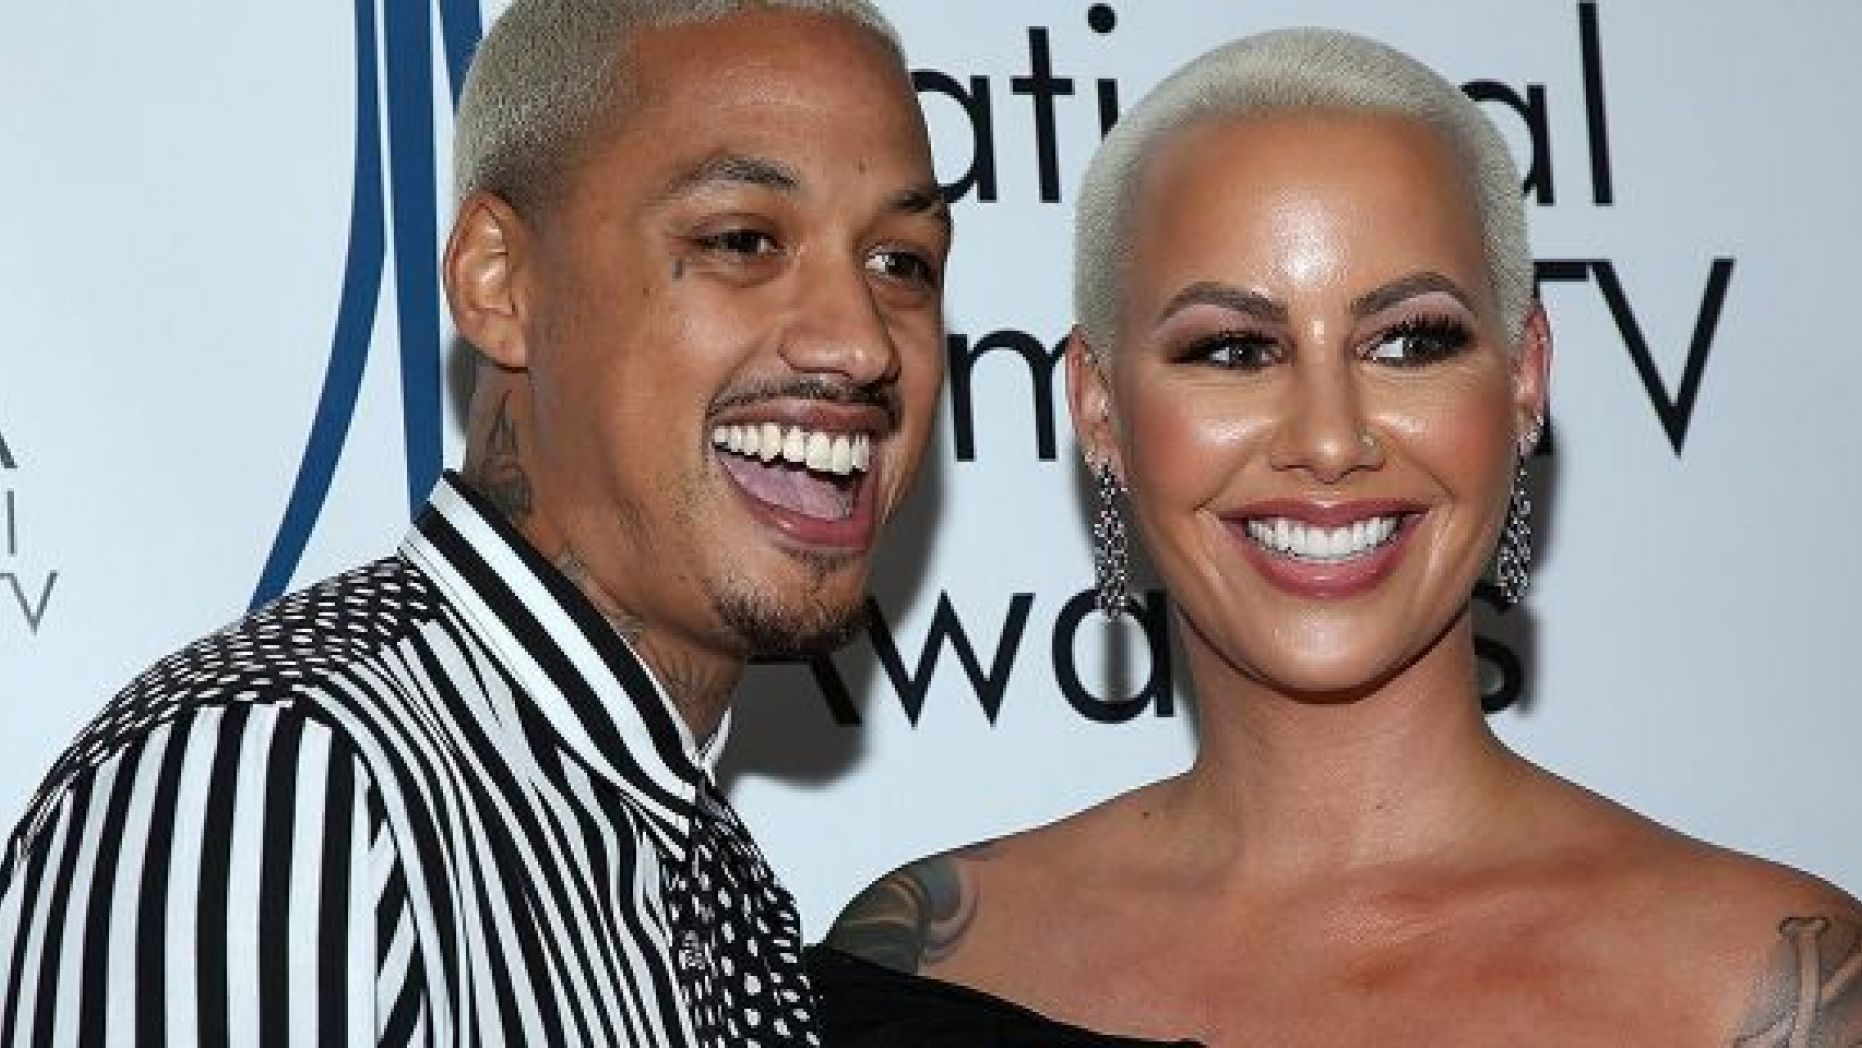 amber-rose-updates-fans-on-her-pregnancy-and-she-reveals-her-health-condition